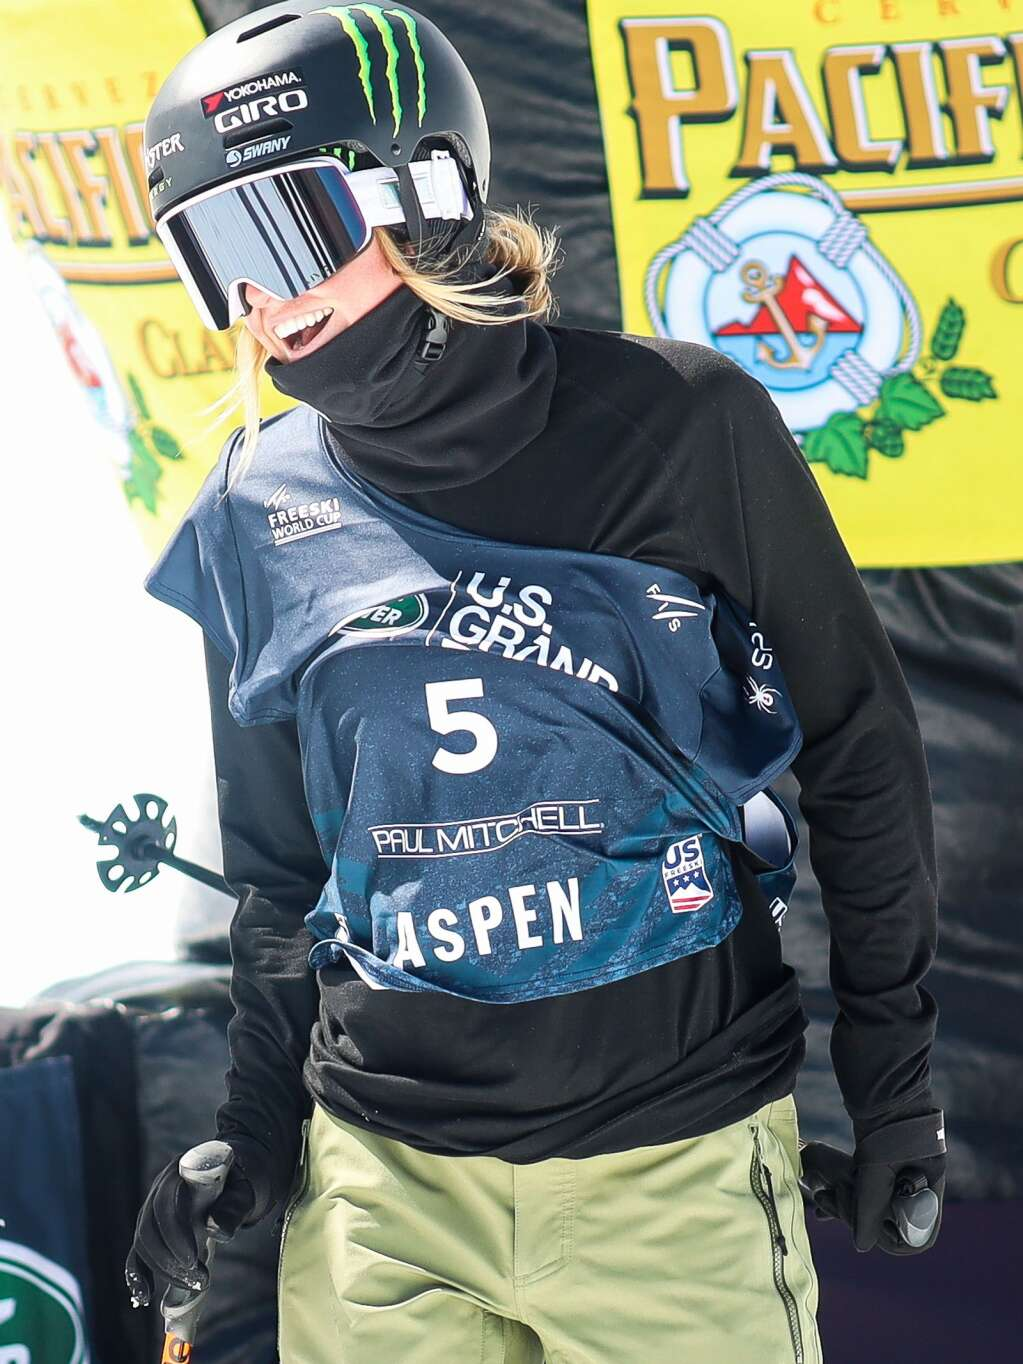 American Brita Sigourney hangs out after the women's freeski halfpipe qualifier of the Land Rover U.S. Grand Prix and World Cup on Friday, March 19, 2021, at Buttermilk Ski Area in Aspen. Photo by Austin Colbert/The Aspen Times.